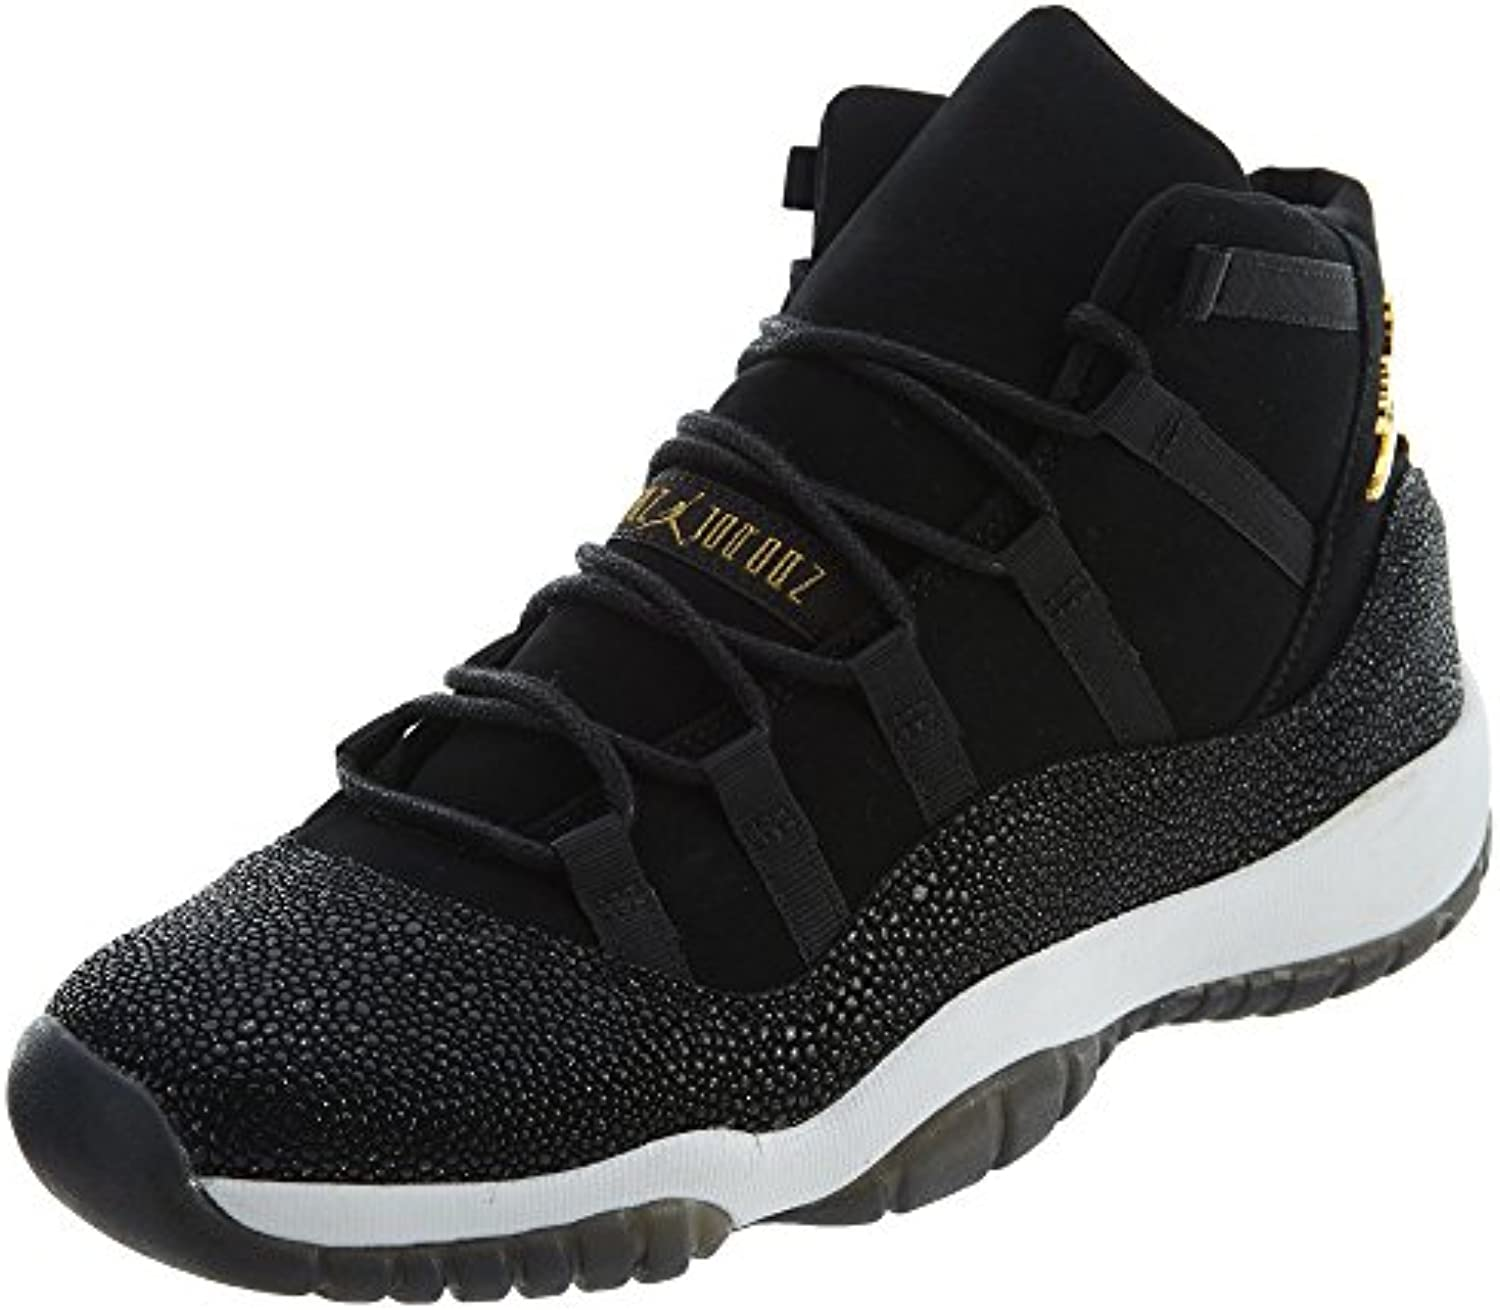 Air Jordan 11 Retro Prem HC (GS) (GS) (GS) 'Heiress' - 852625-030 - Dimensione 3.5 - | Superficie facile da pulire